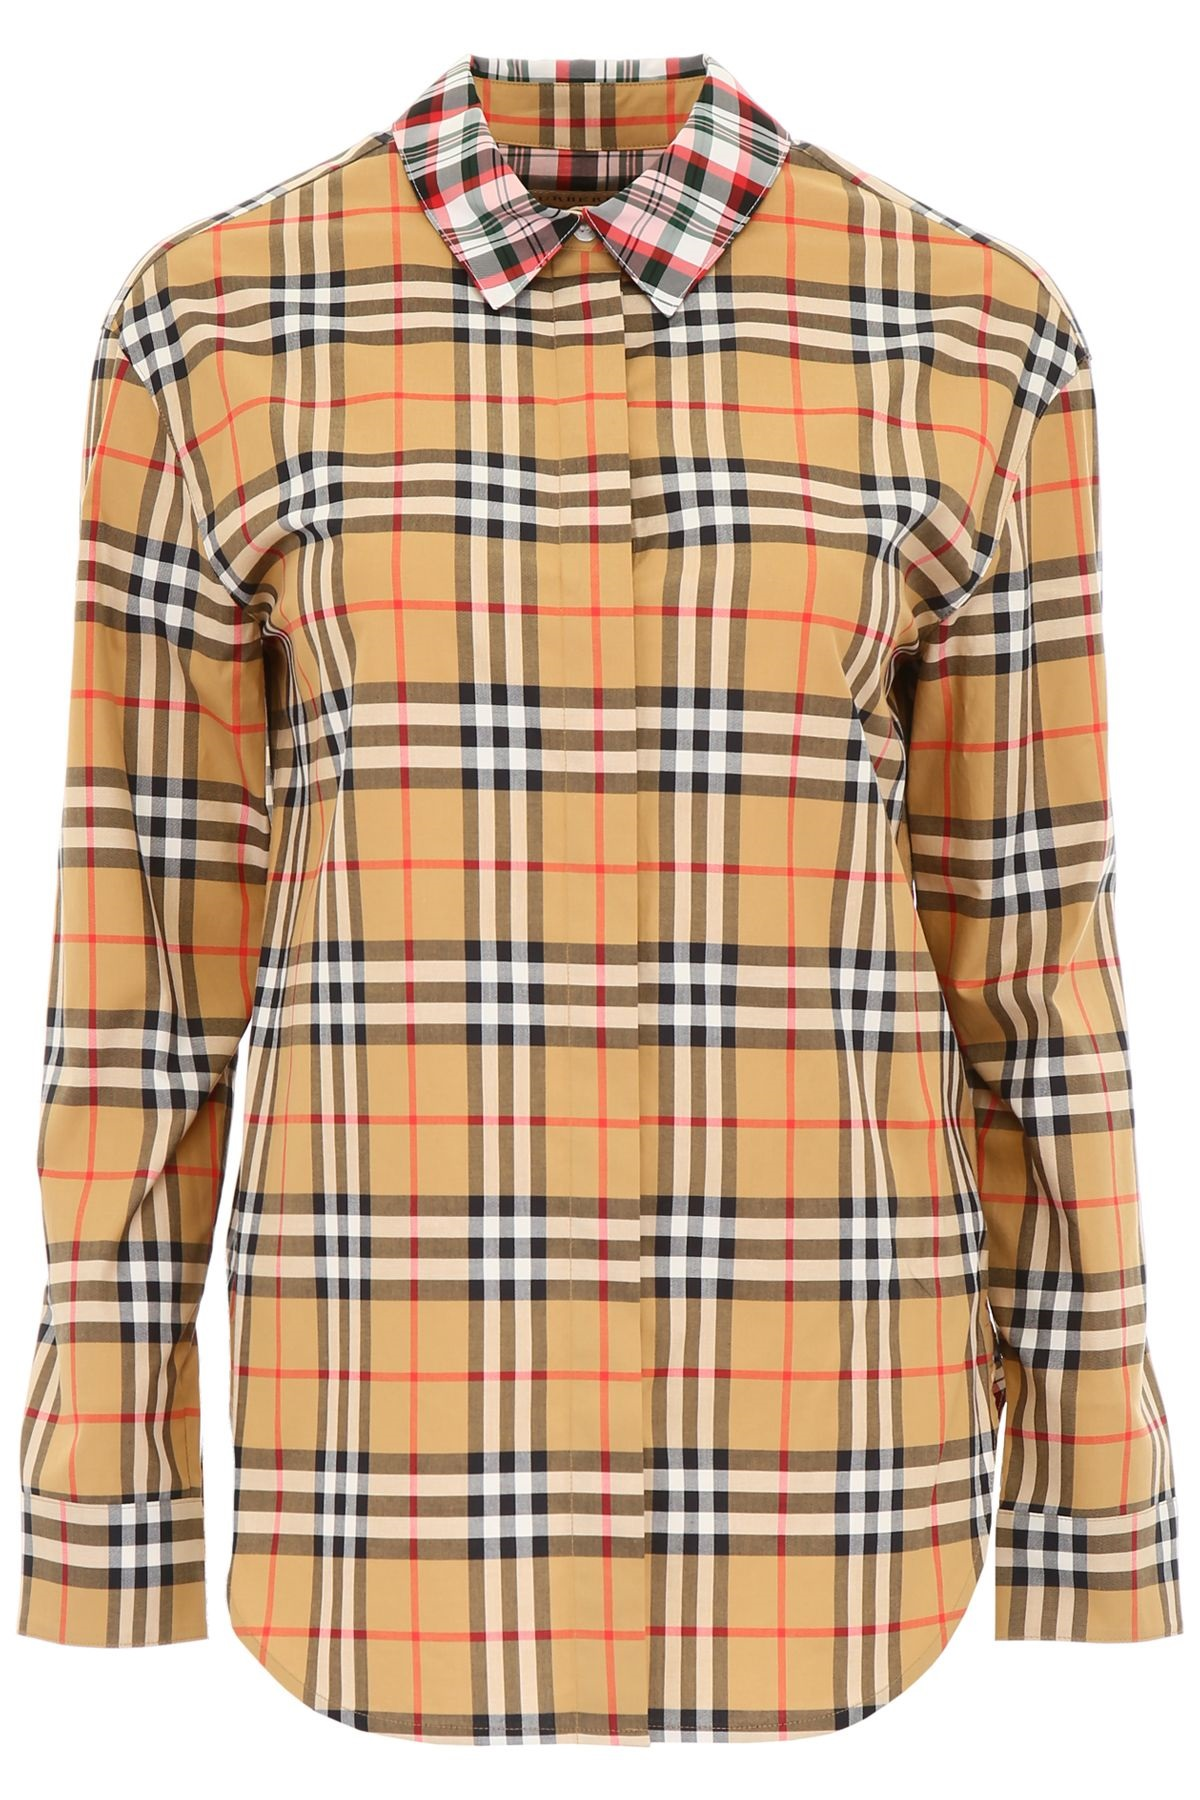 Burberry Kestrel Check Shirt In Mother Of Pearl